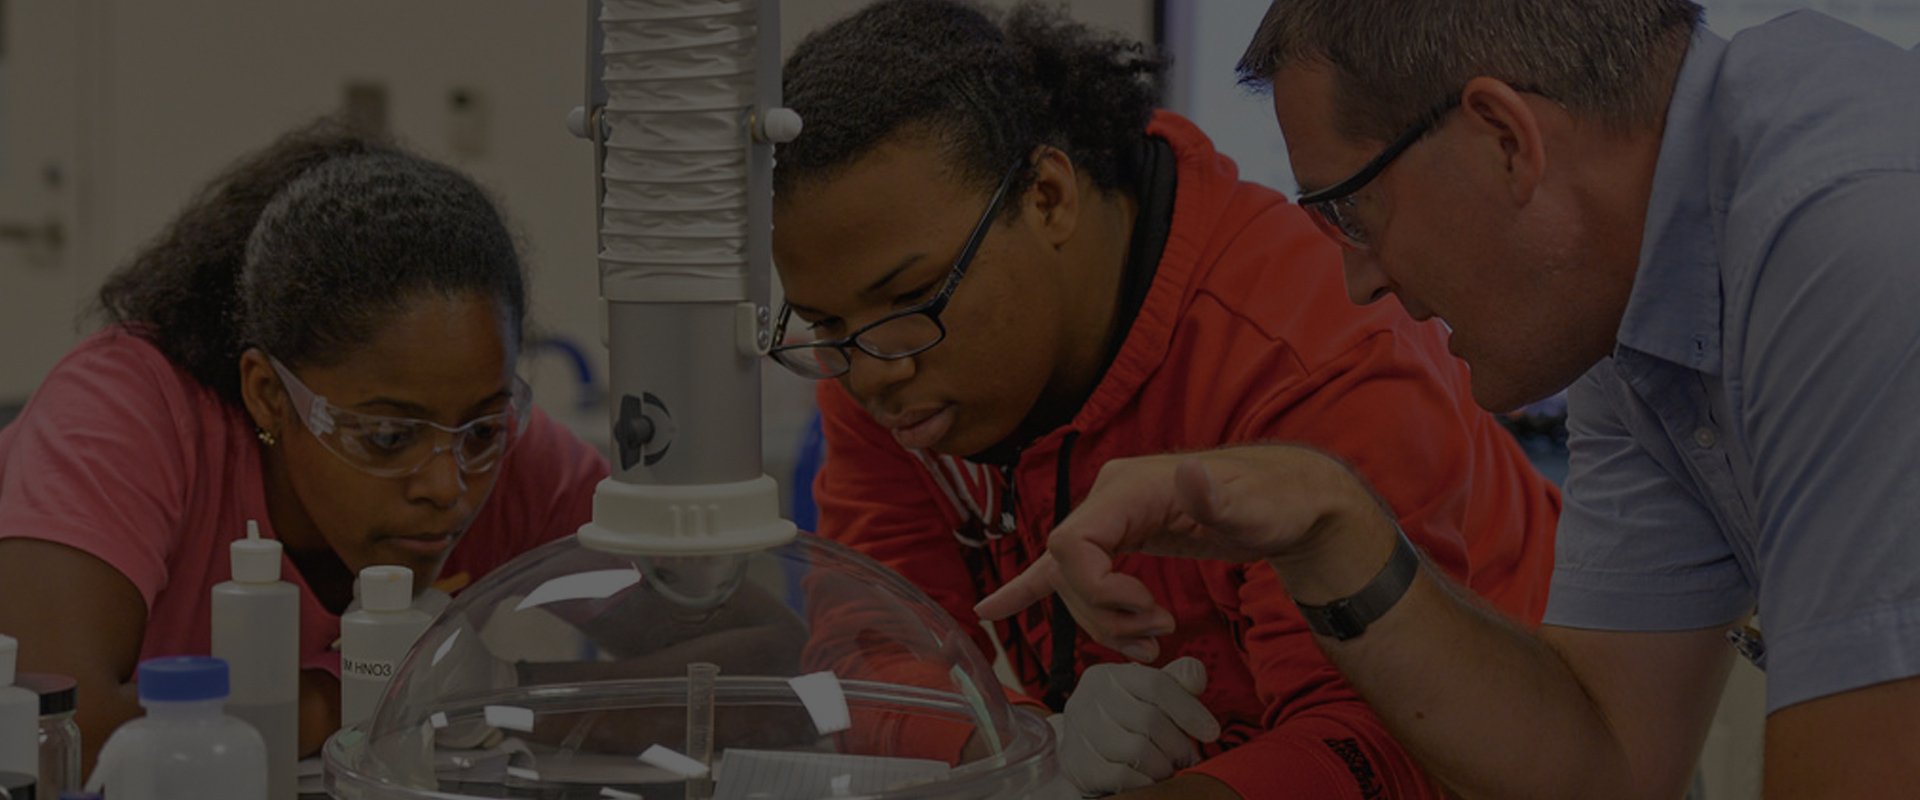 diverse students learning technical skills